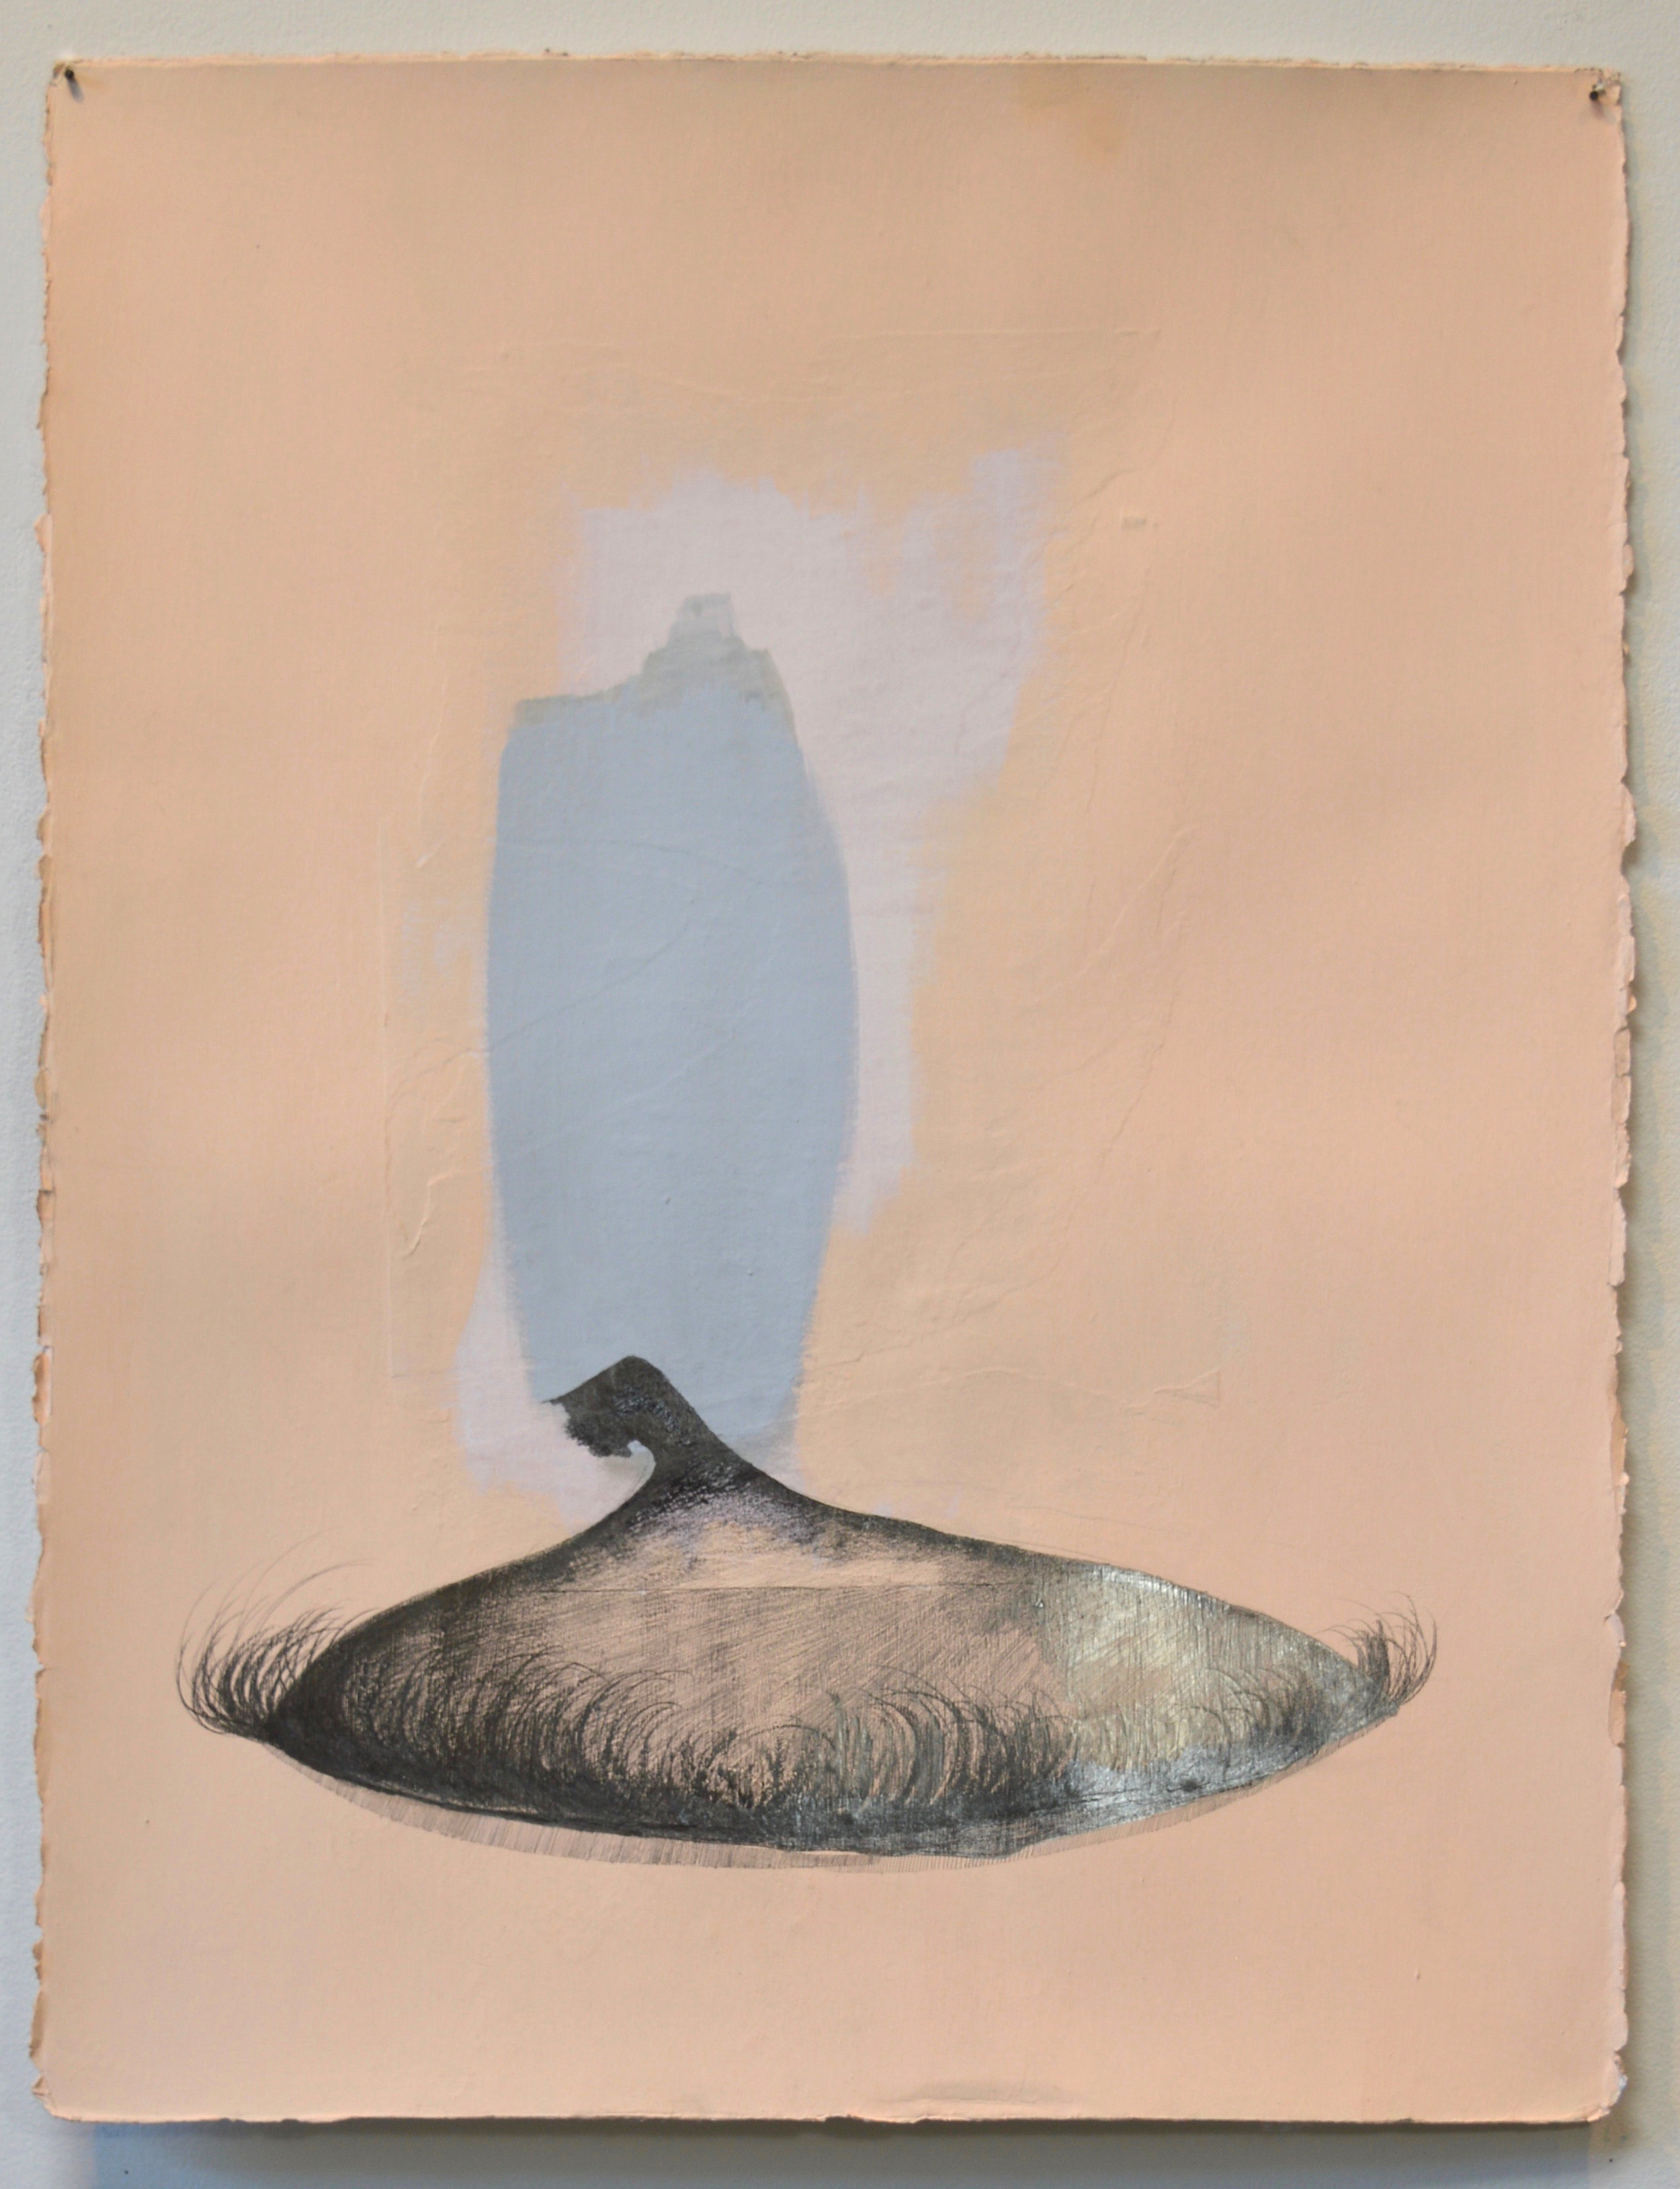 Yanique Norman   Quashie Silences: Blinking at the Sun #1,  2019  Gouache, graphite, and collage on paper  30H x 22W inches